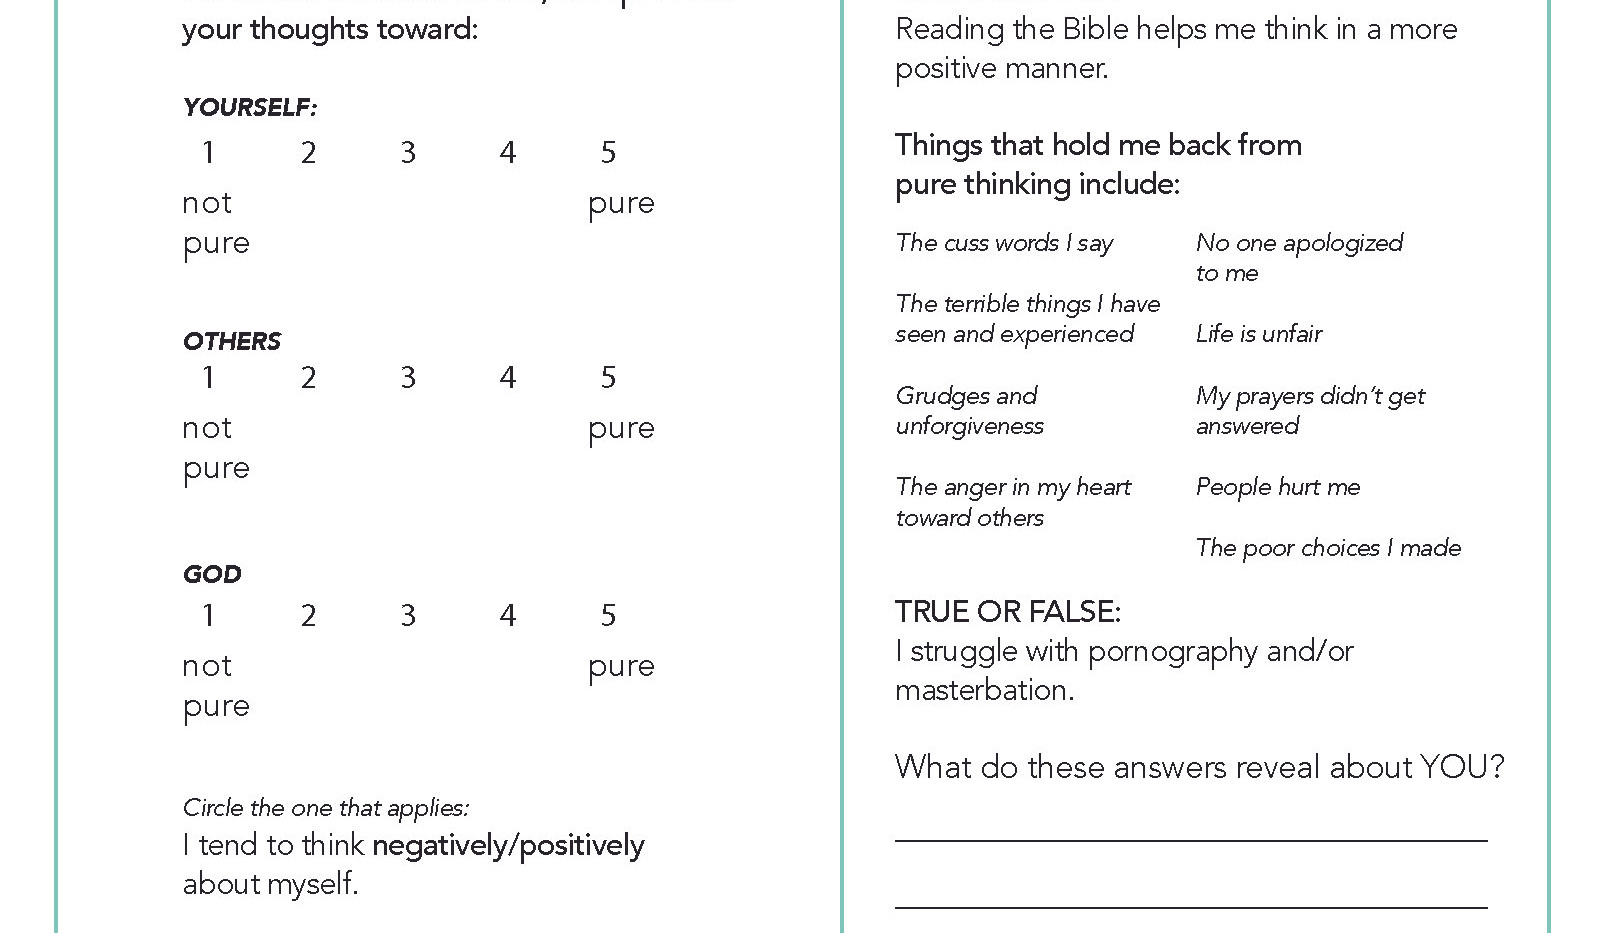 Purity of Mind Survey